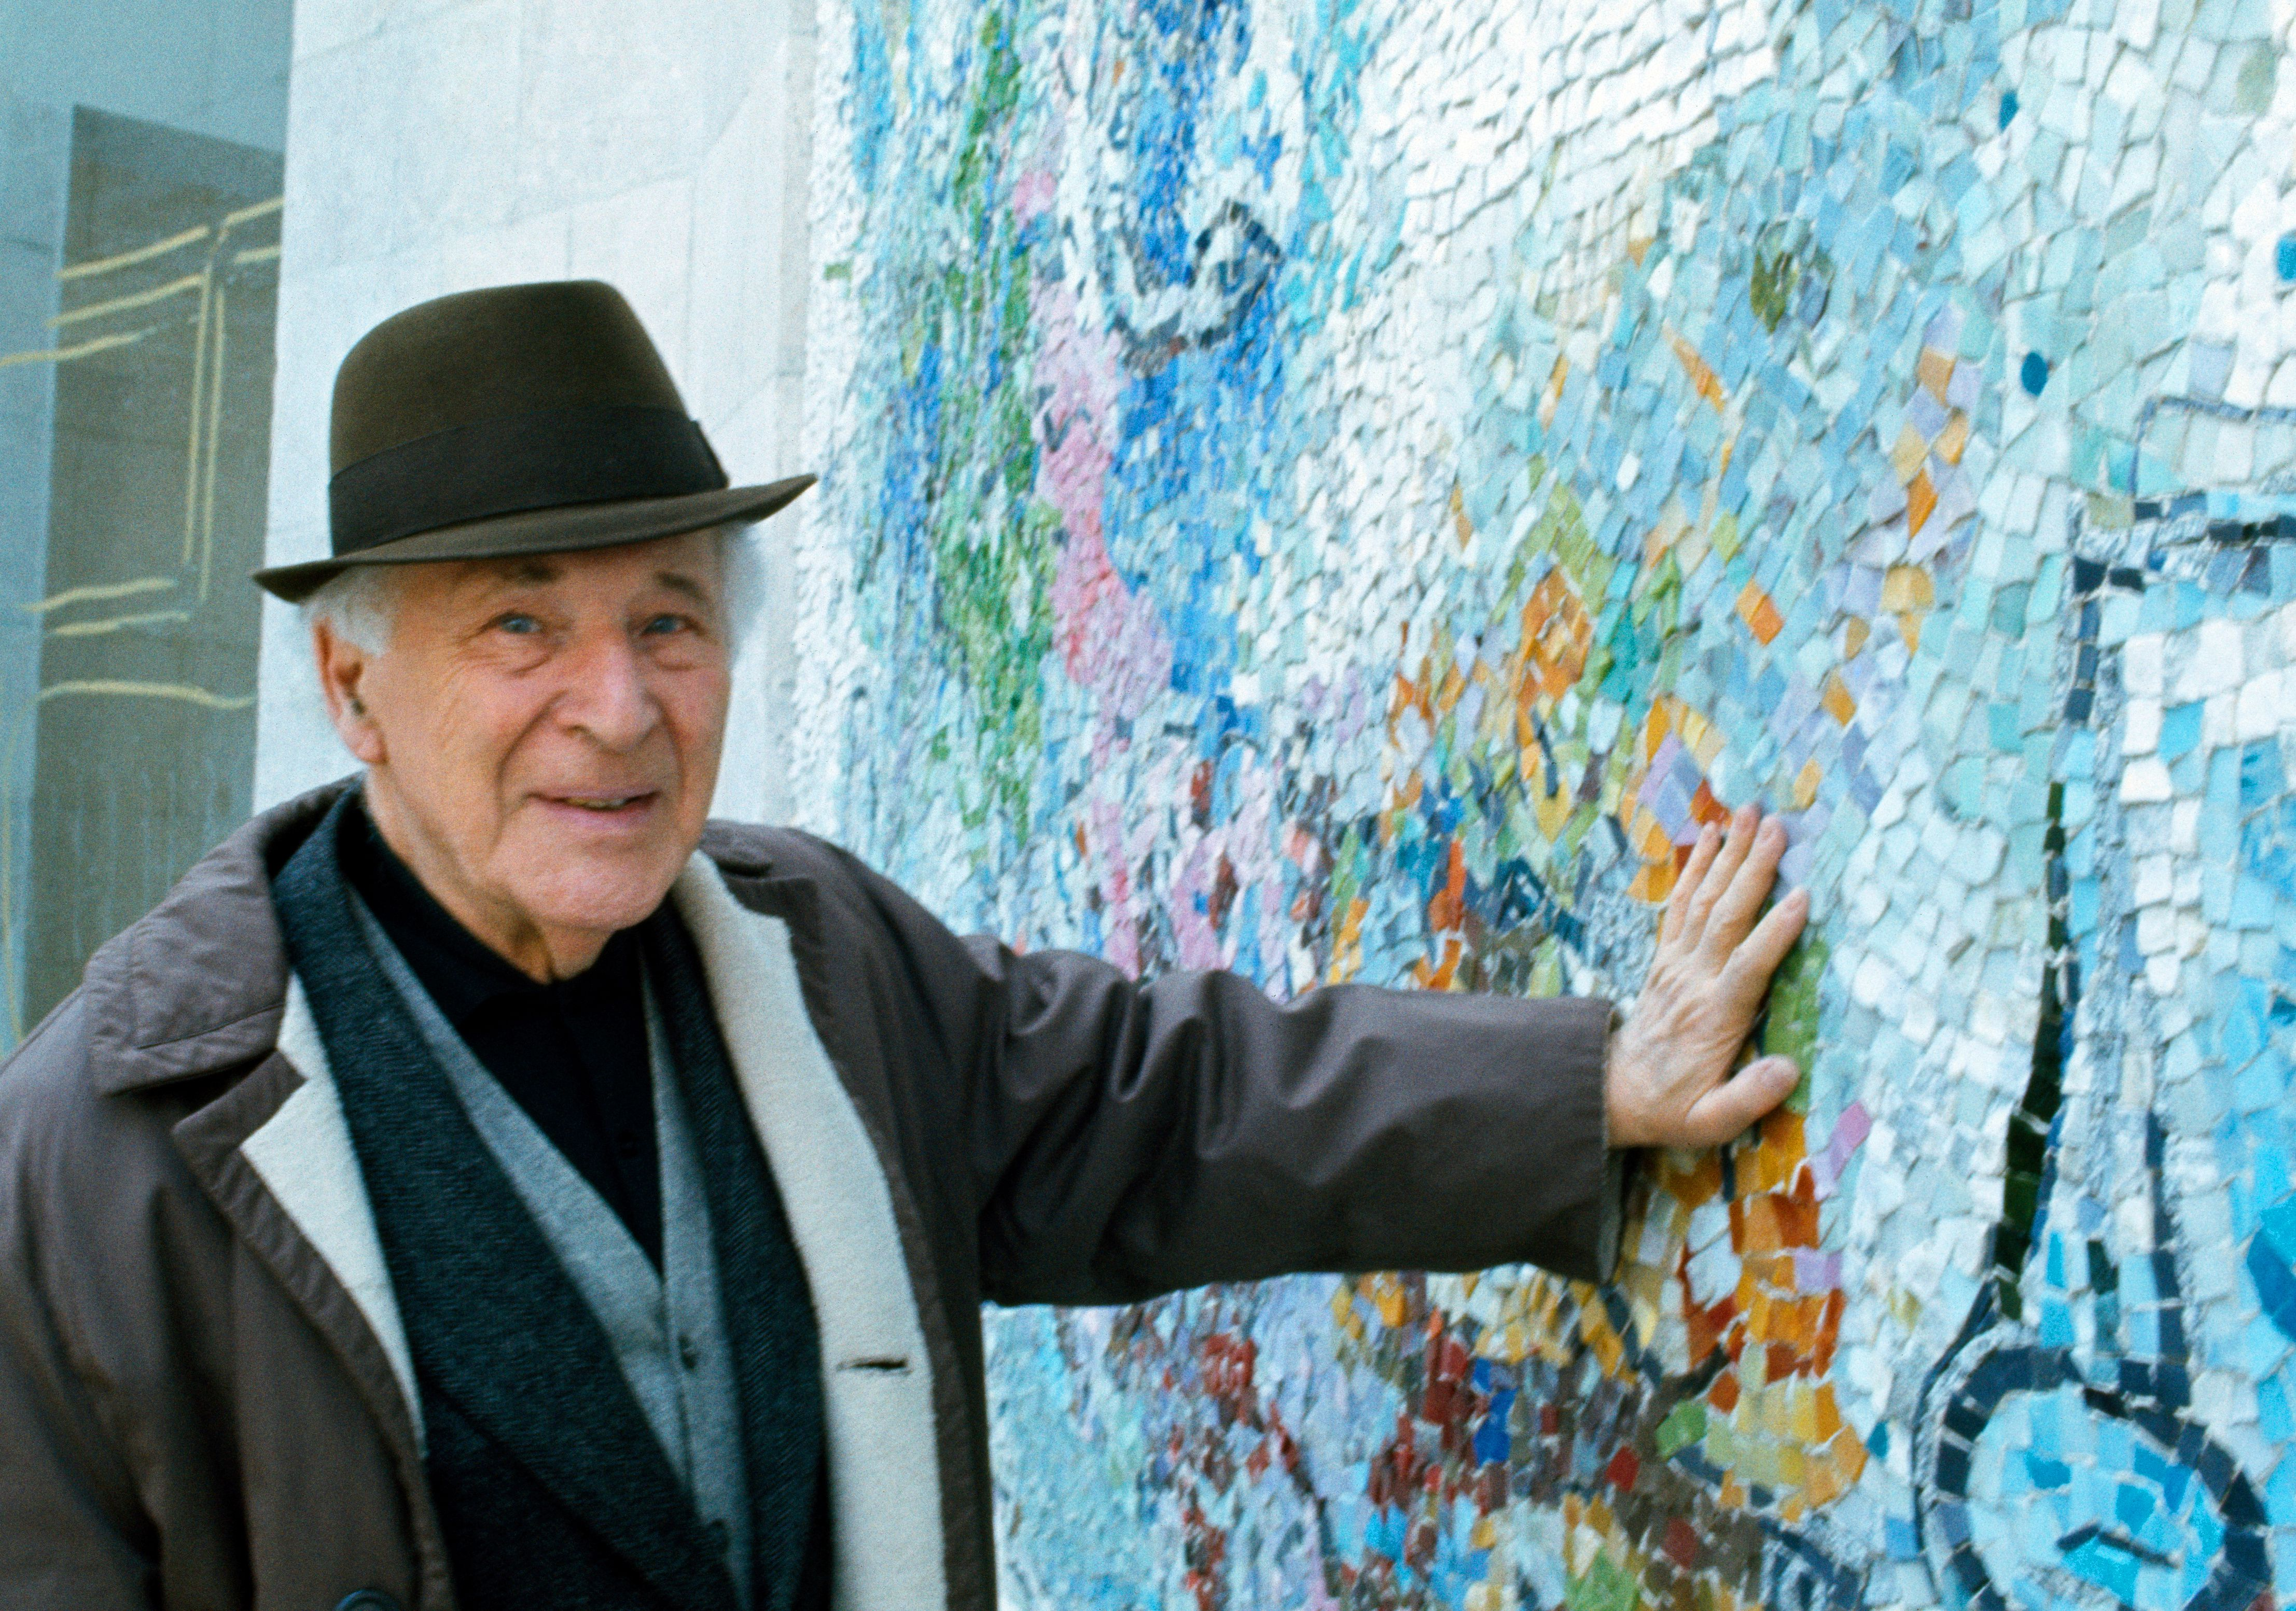 Artist Marc Chagall wearing a hat presses his hand against a wall with blue mosaic designs.